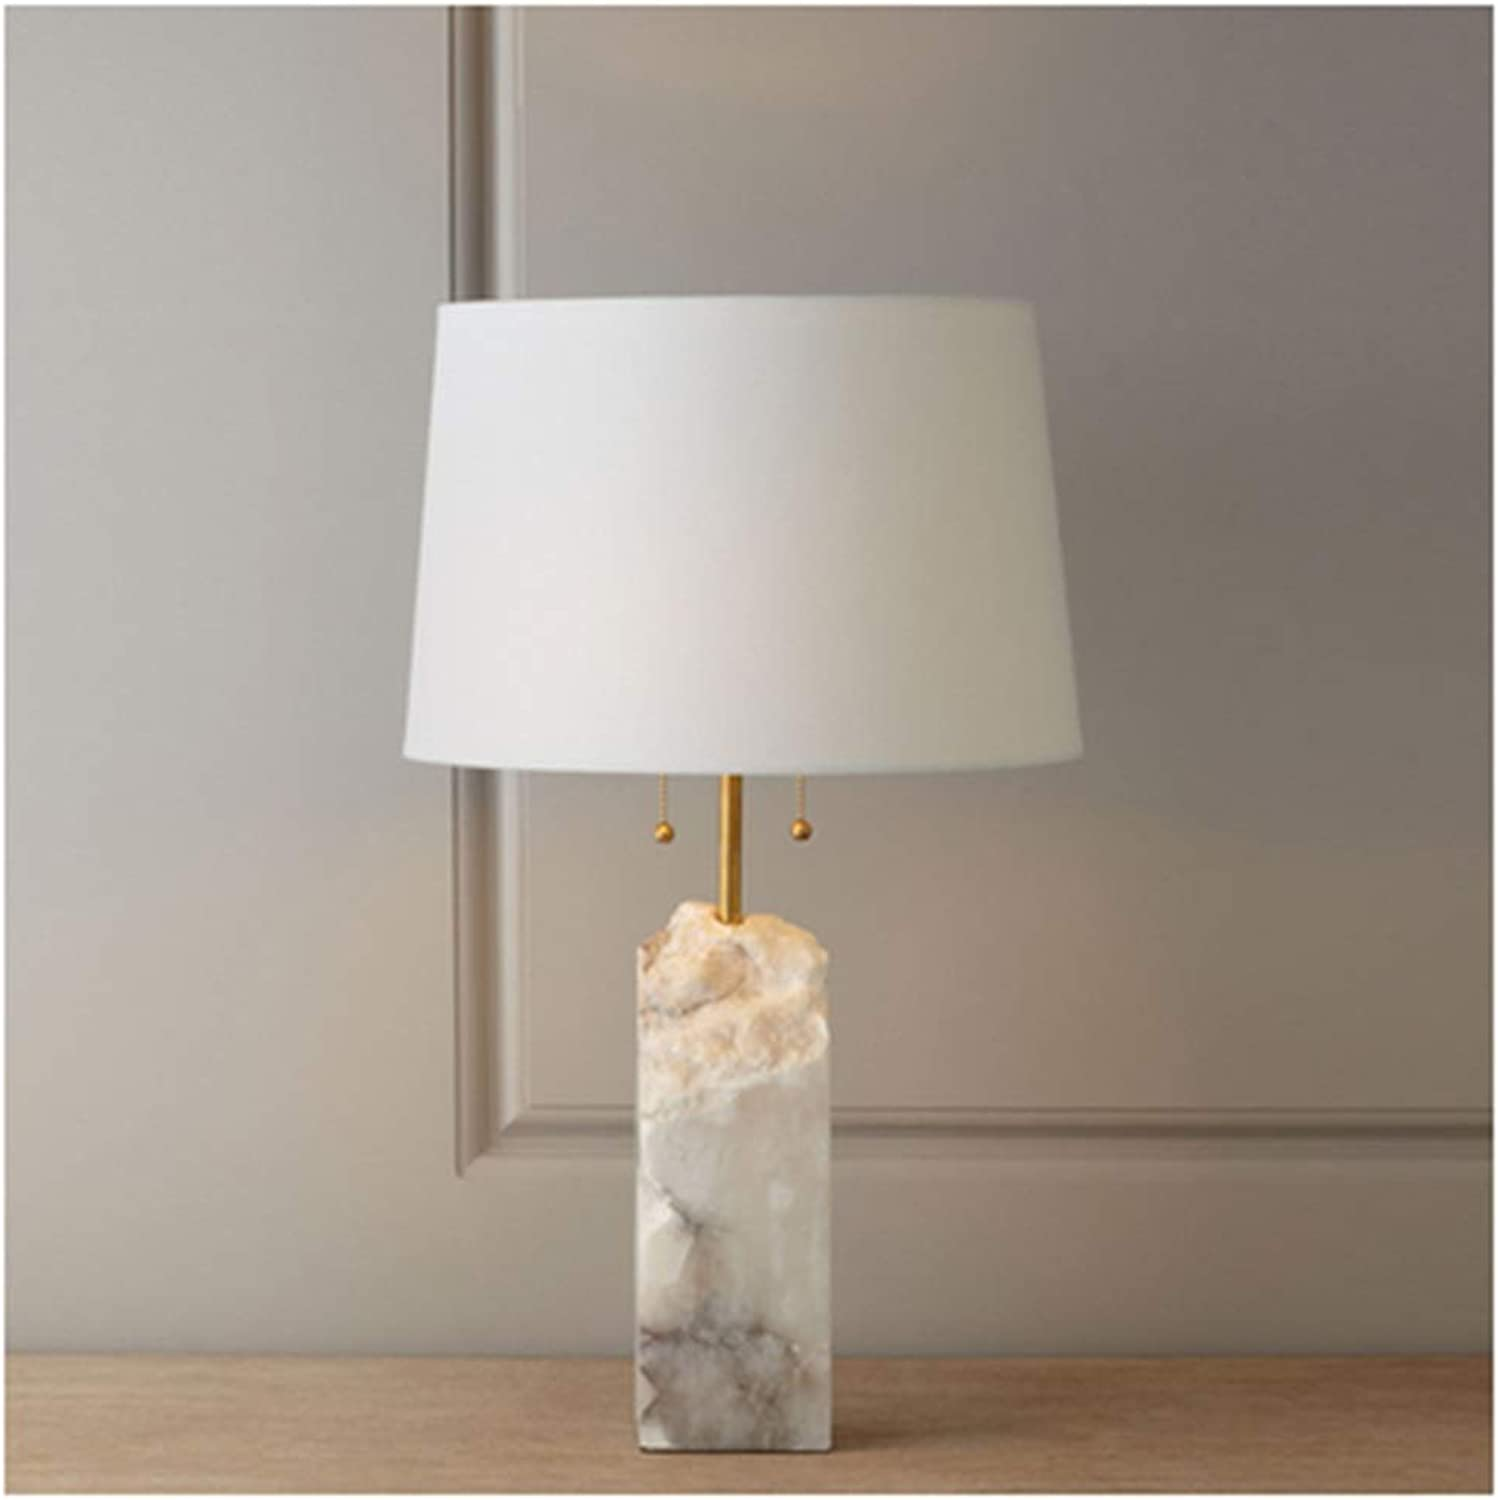 PPWAN Simple Household Table Lamp Modern Bedroom Living Room Table Lamp Desk Exquisite and Durable Reading Lamp 4290 Table lamp